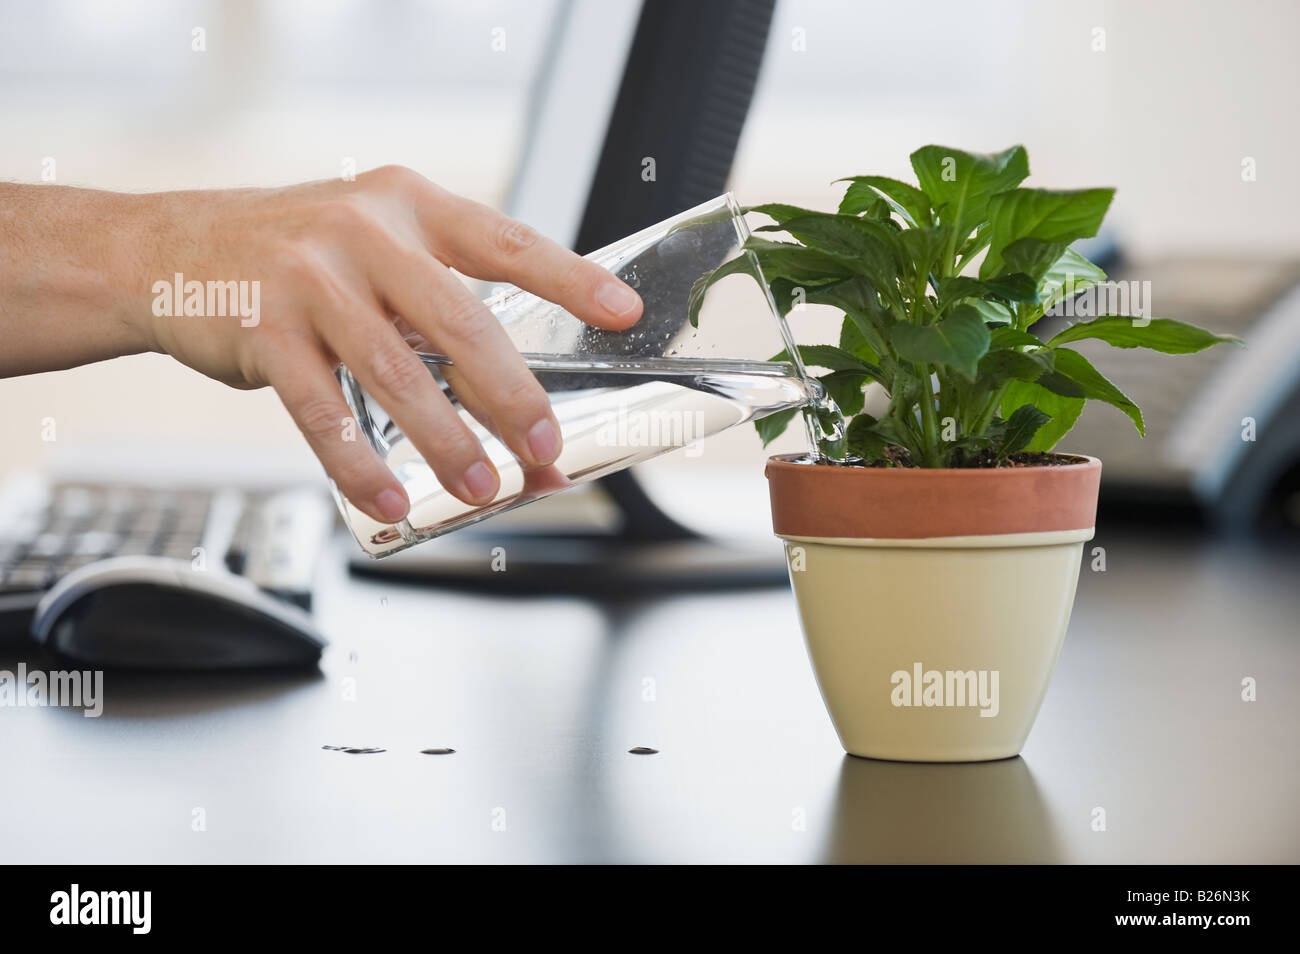 Businessman watering potted plant - Stock Image